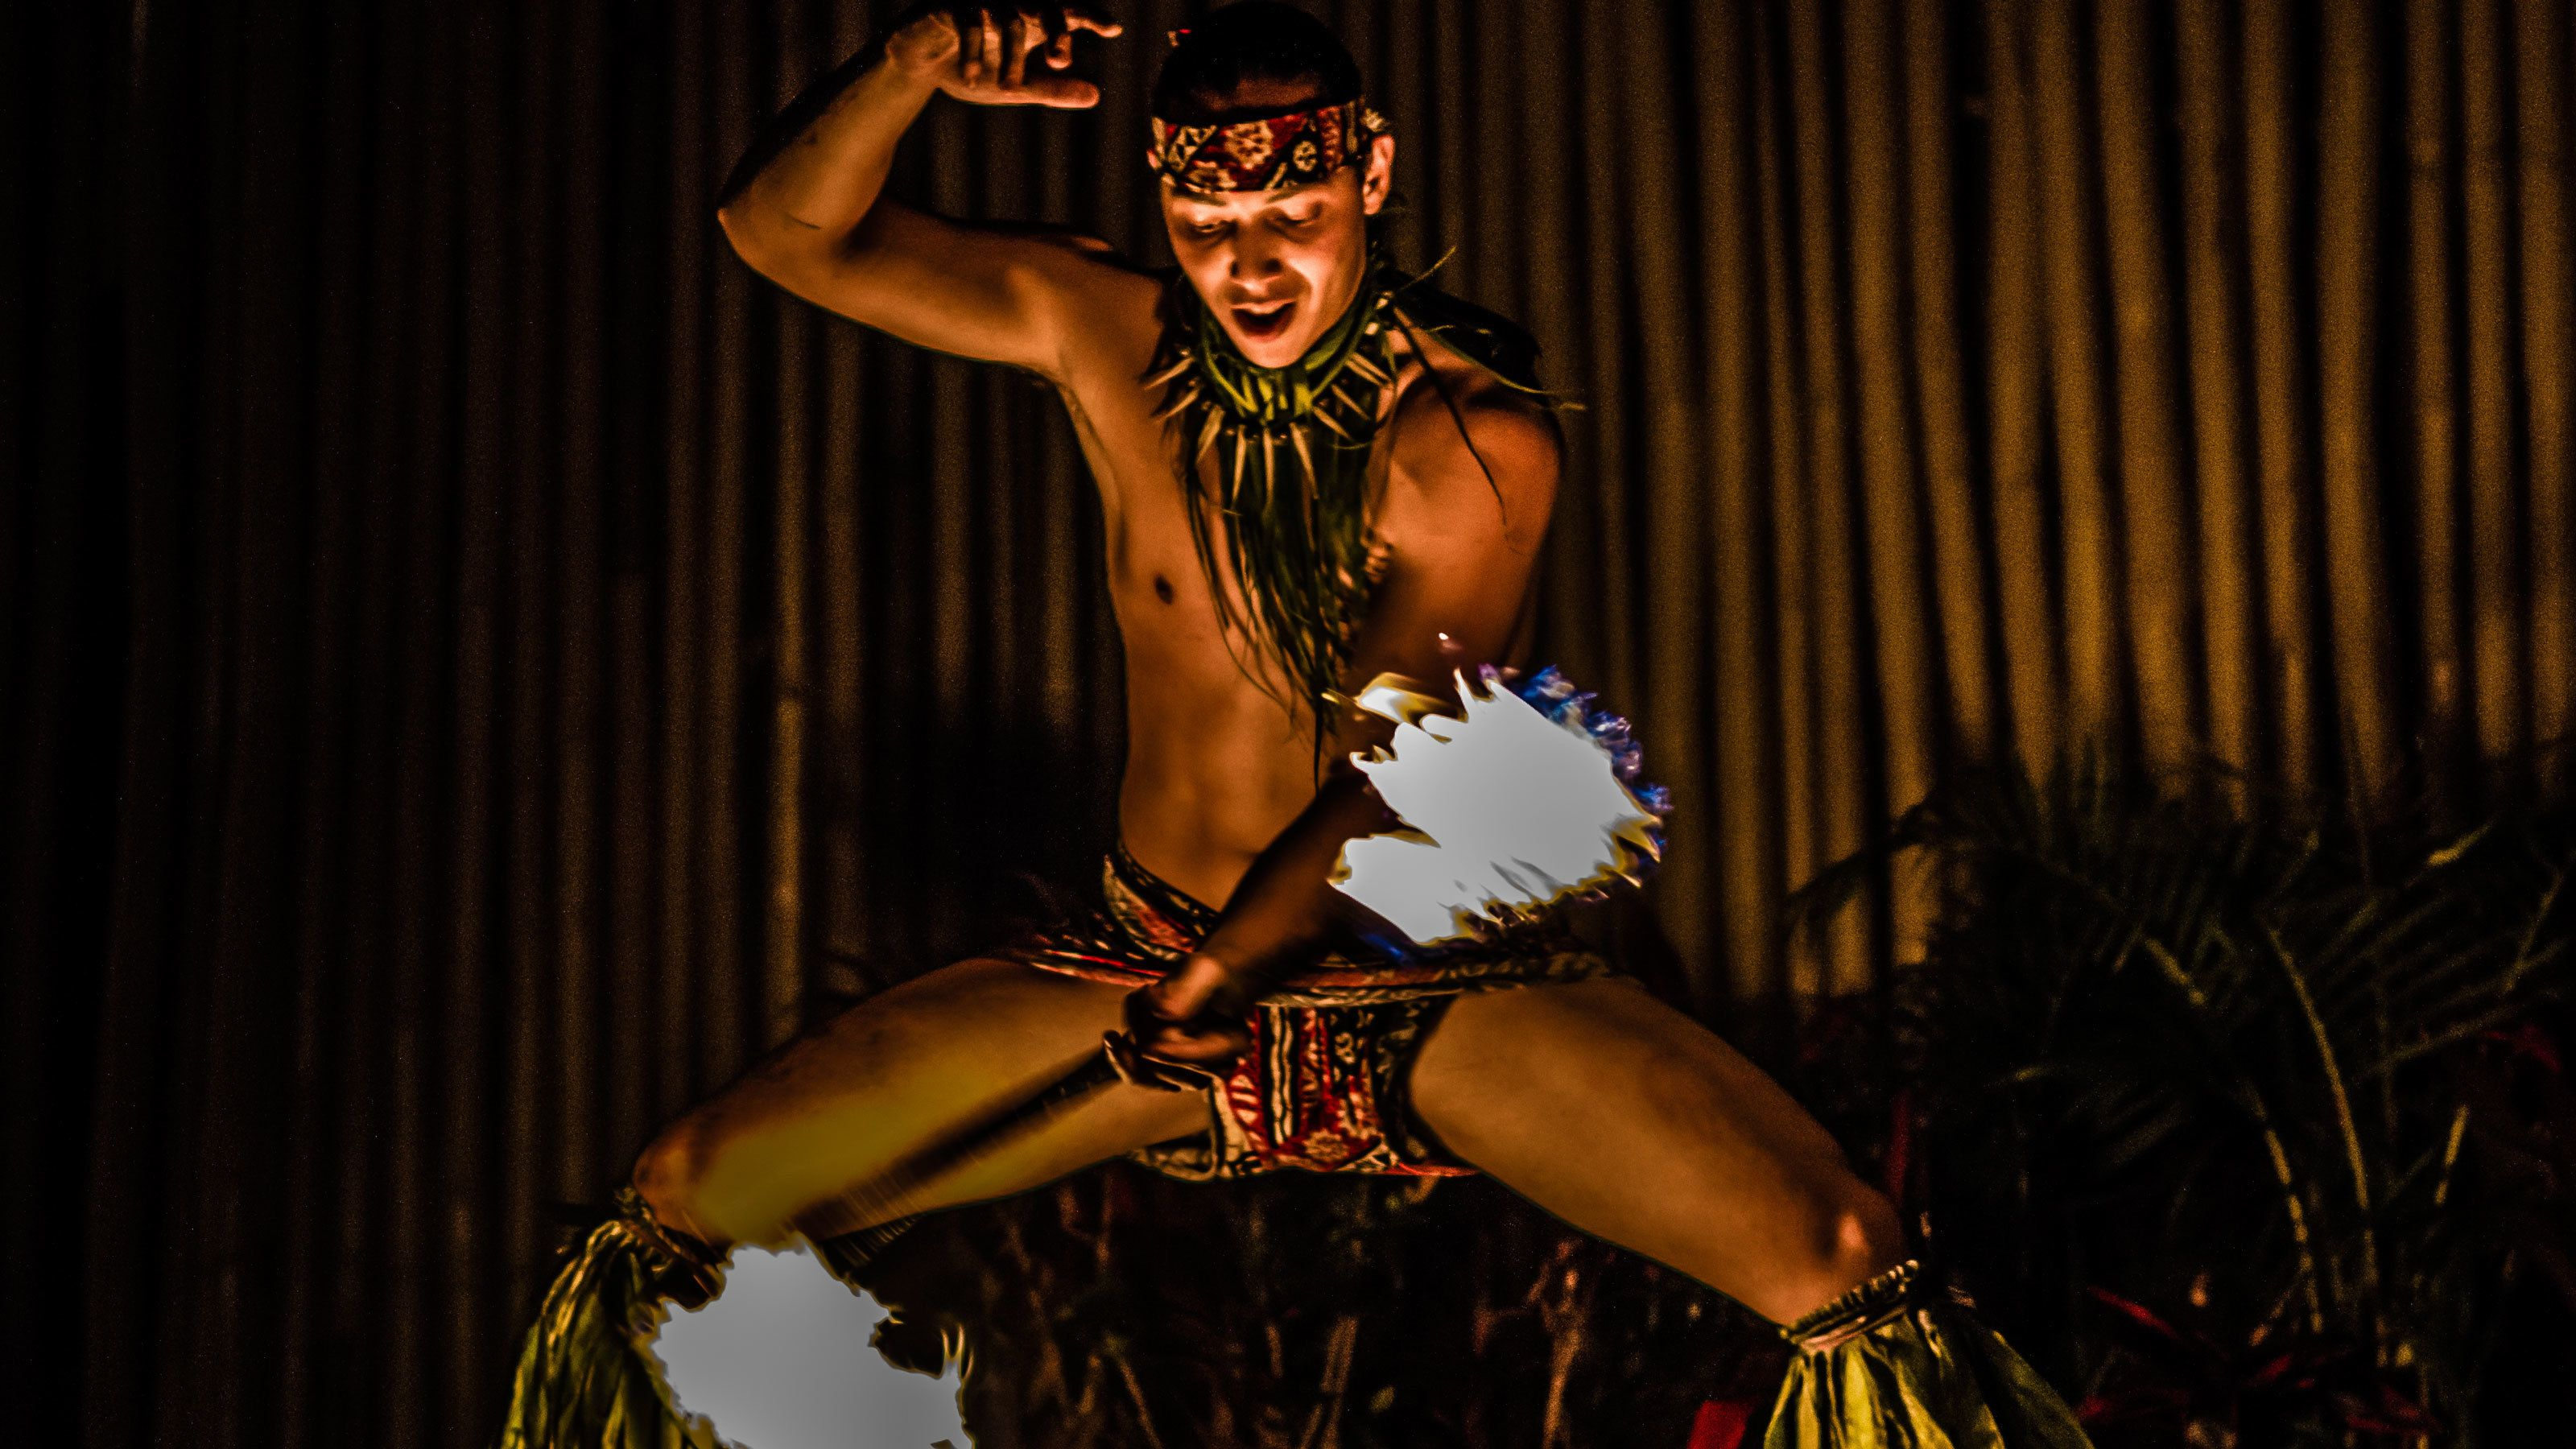 Male performer fire dancing at the Luau at Royal Lahaina Resort in Maui